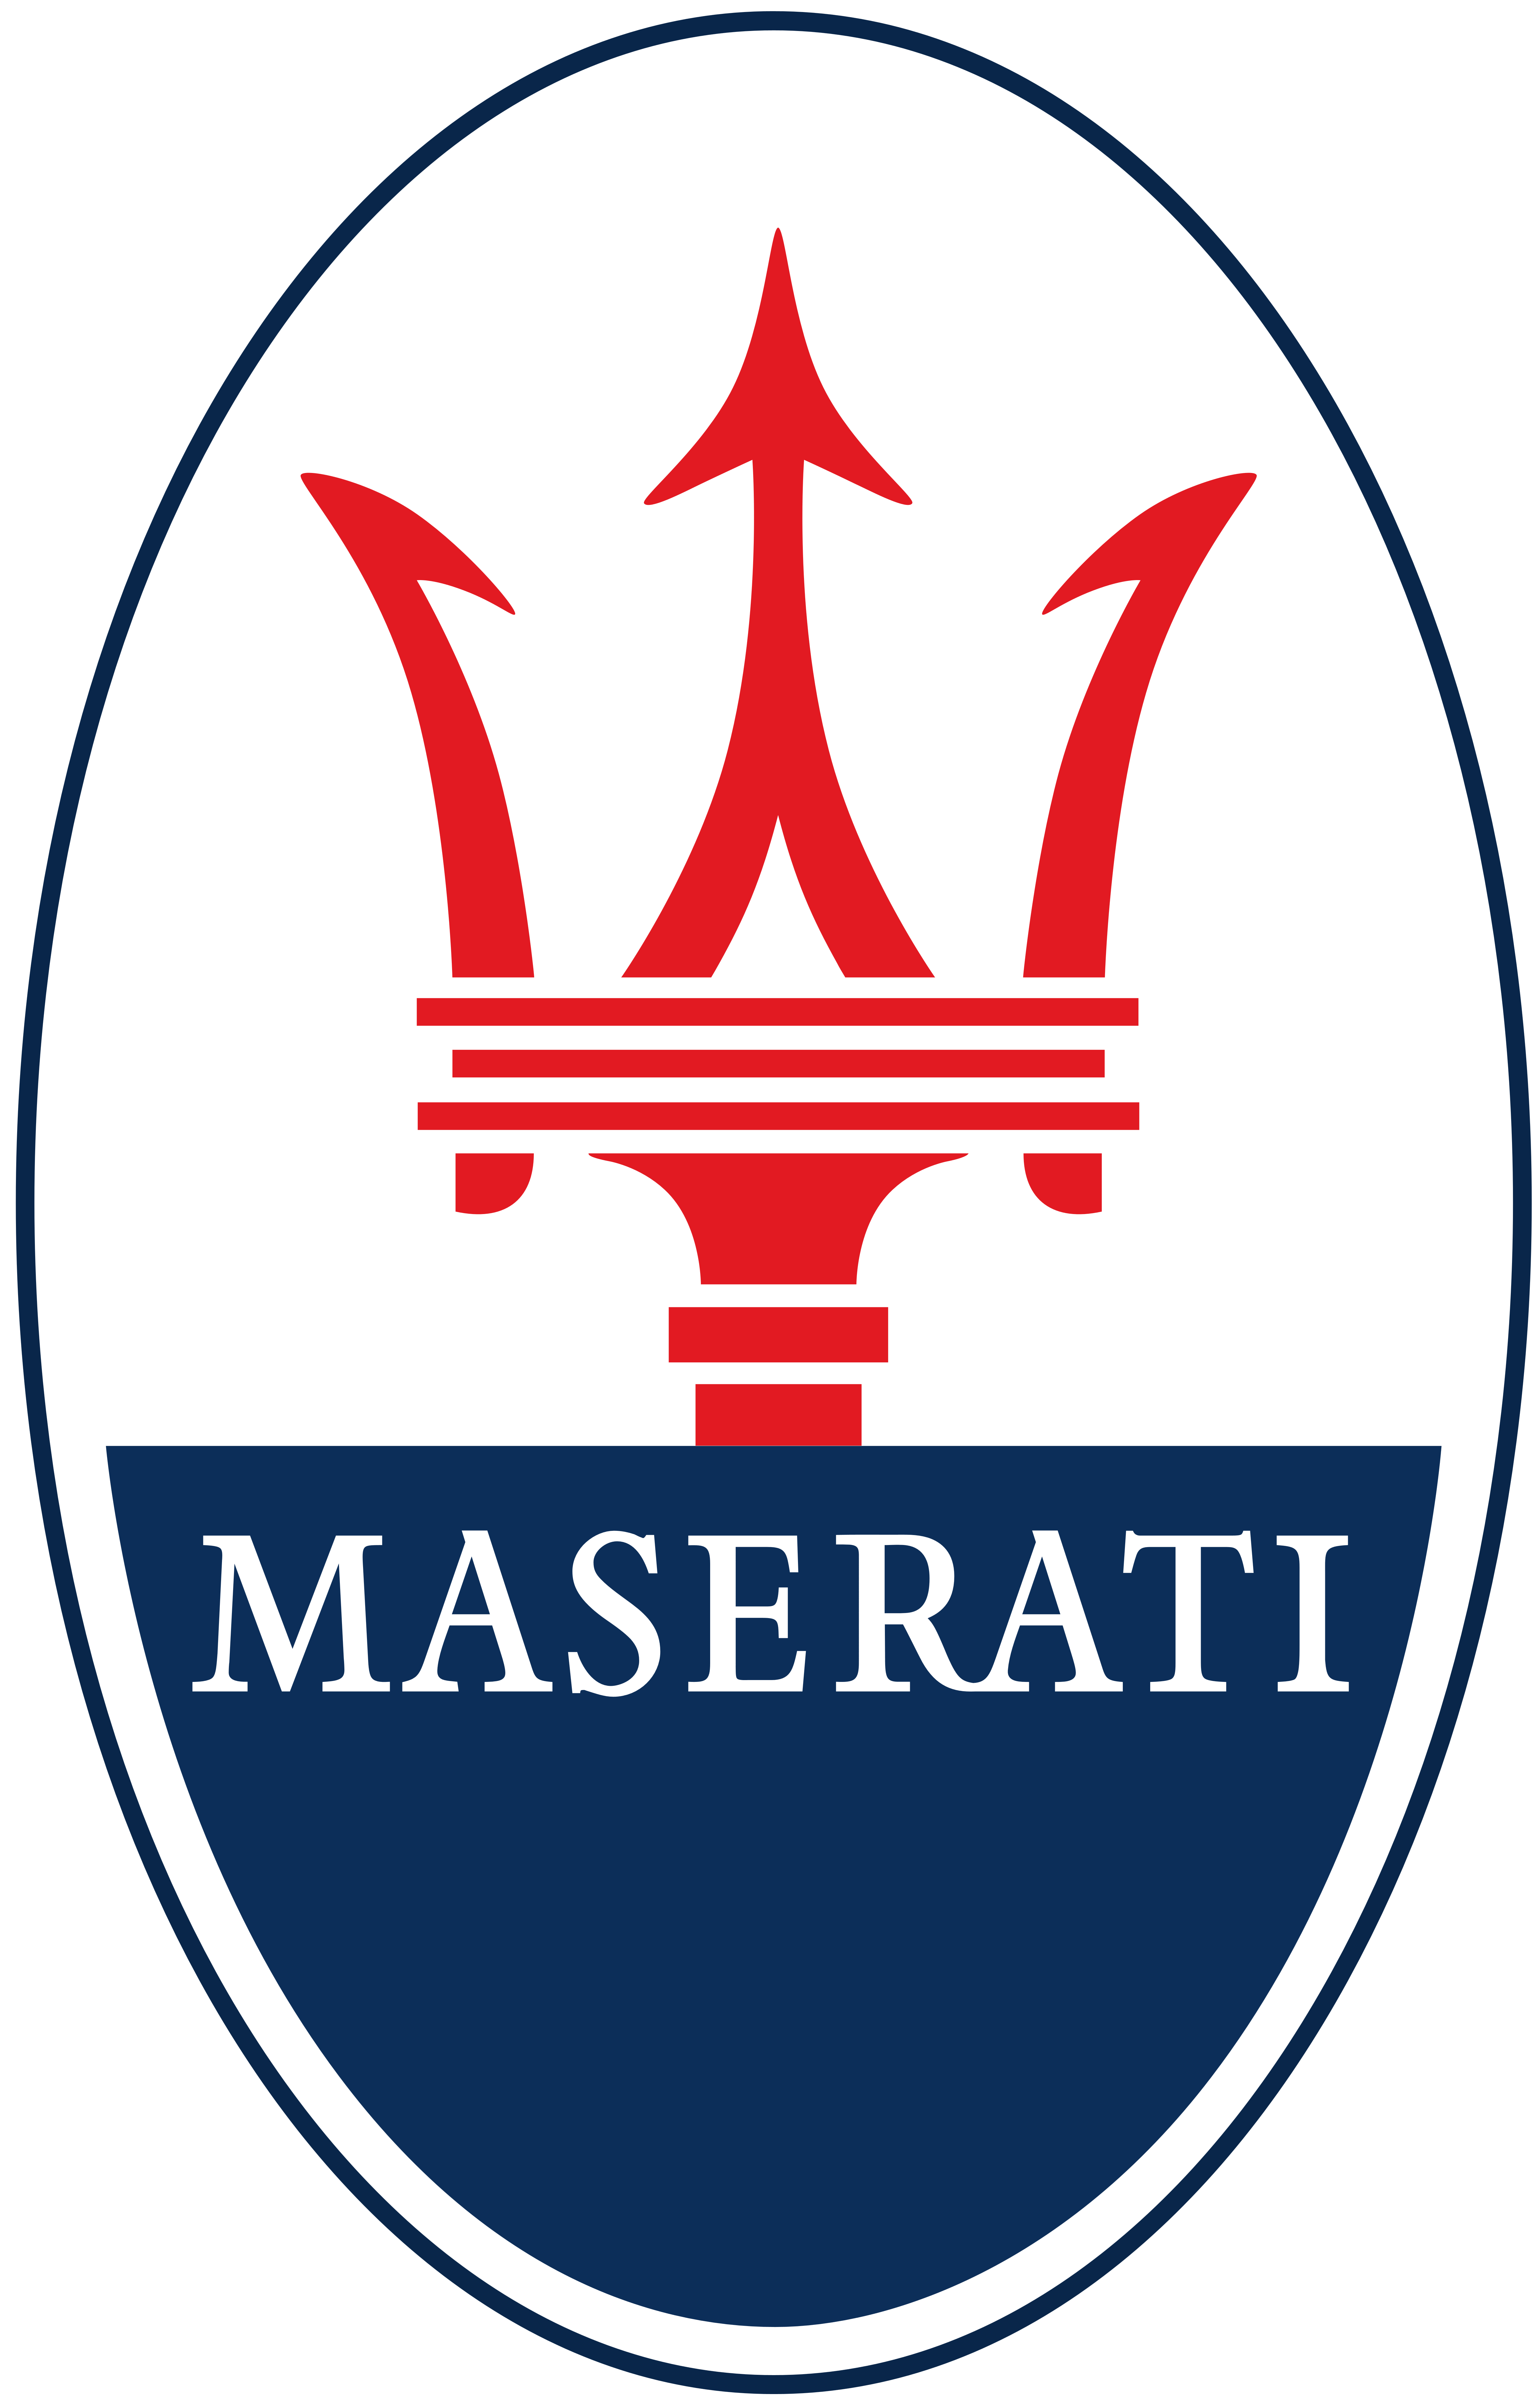 bentley logo with 1465 Maserati Logo Download on Carvana Car Vending Machine likewise 1465 Maserati Logo Download in addition Vauxhall Insignia Sports Tourer Gsi Spied also Real Madrid Logo likewise Click The Car Logos.